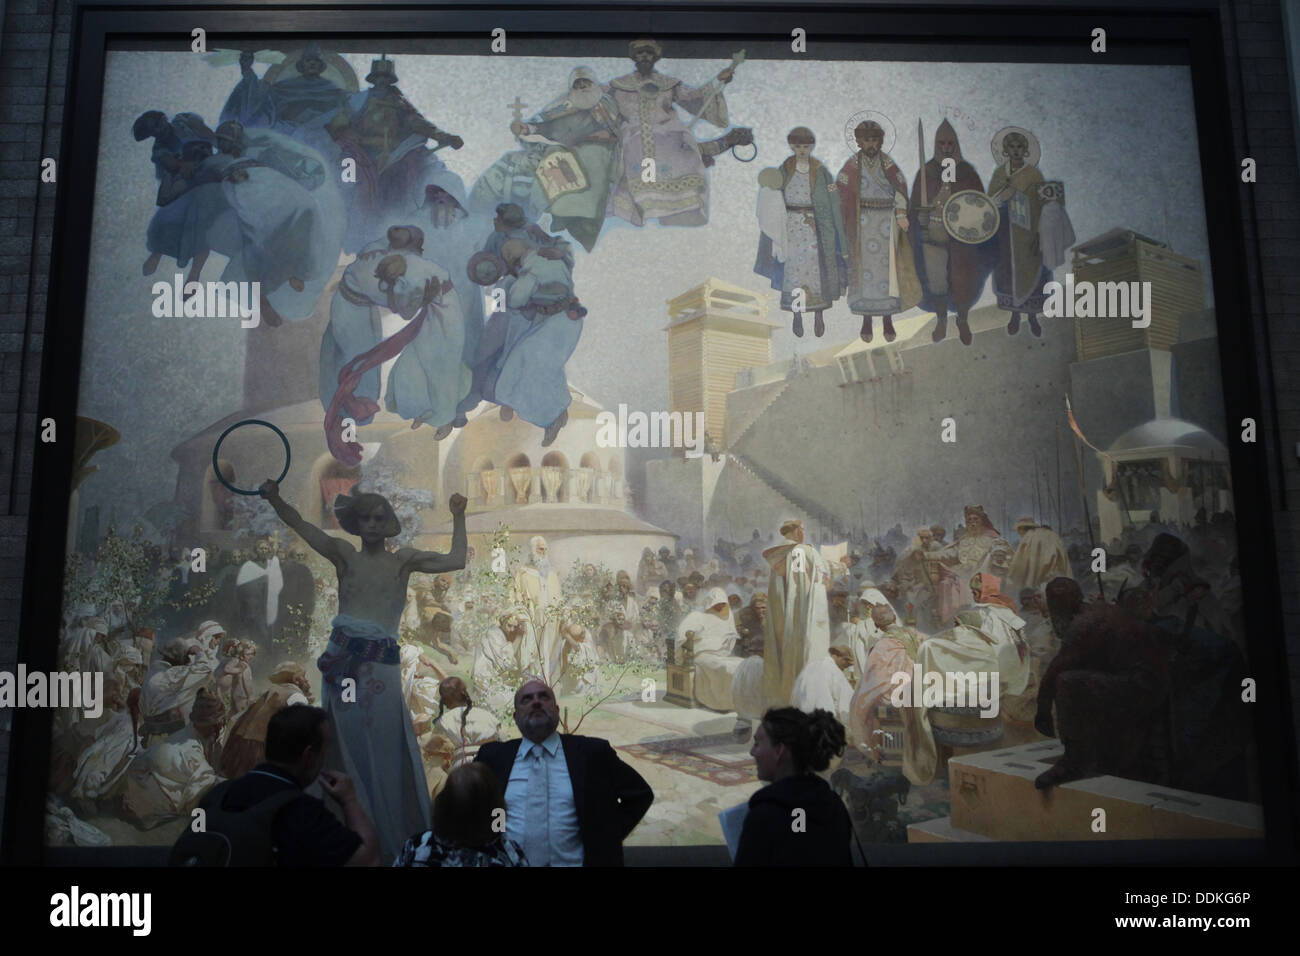 Painting 'The Introduction of the Slavonic Liturgy in Great Moravia' from the cycle 'The Slav Epic' painted by Alfons Mucha. - Stock Image